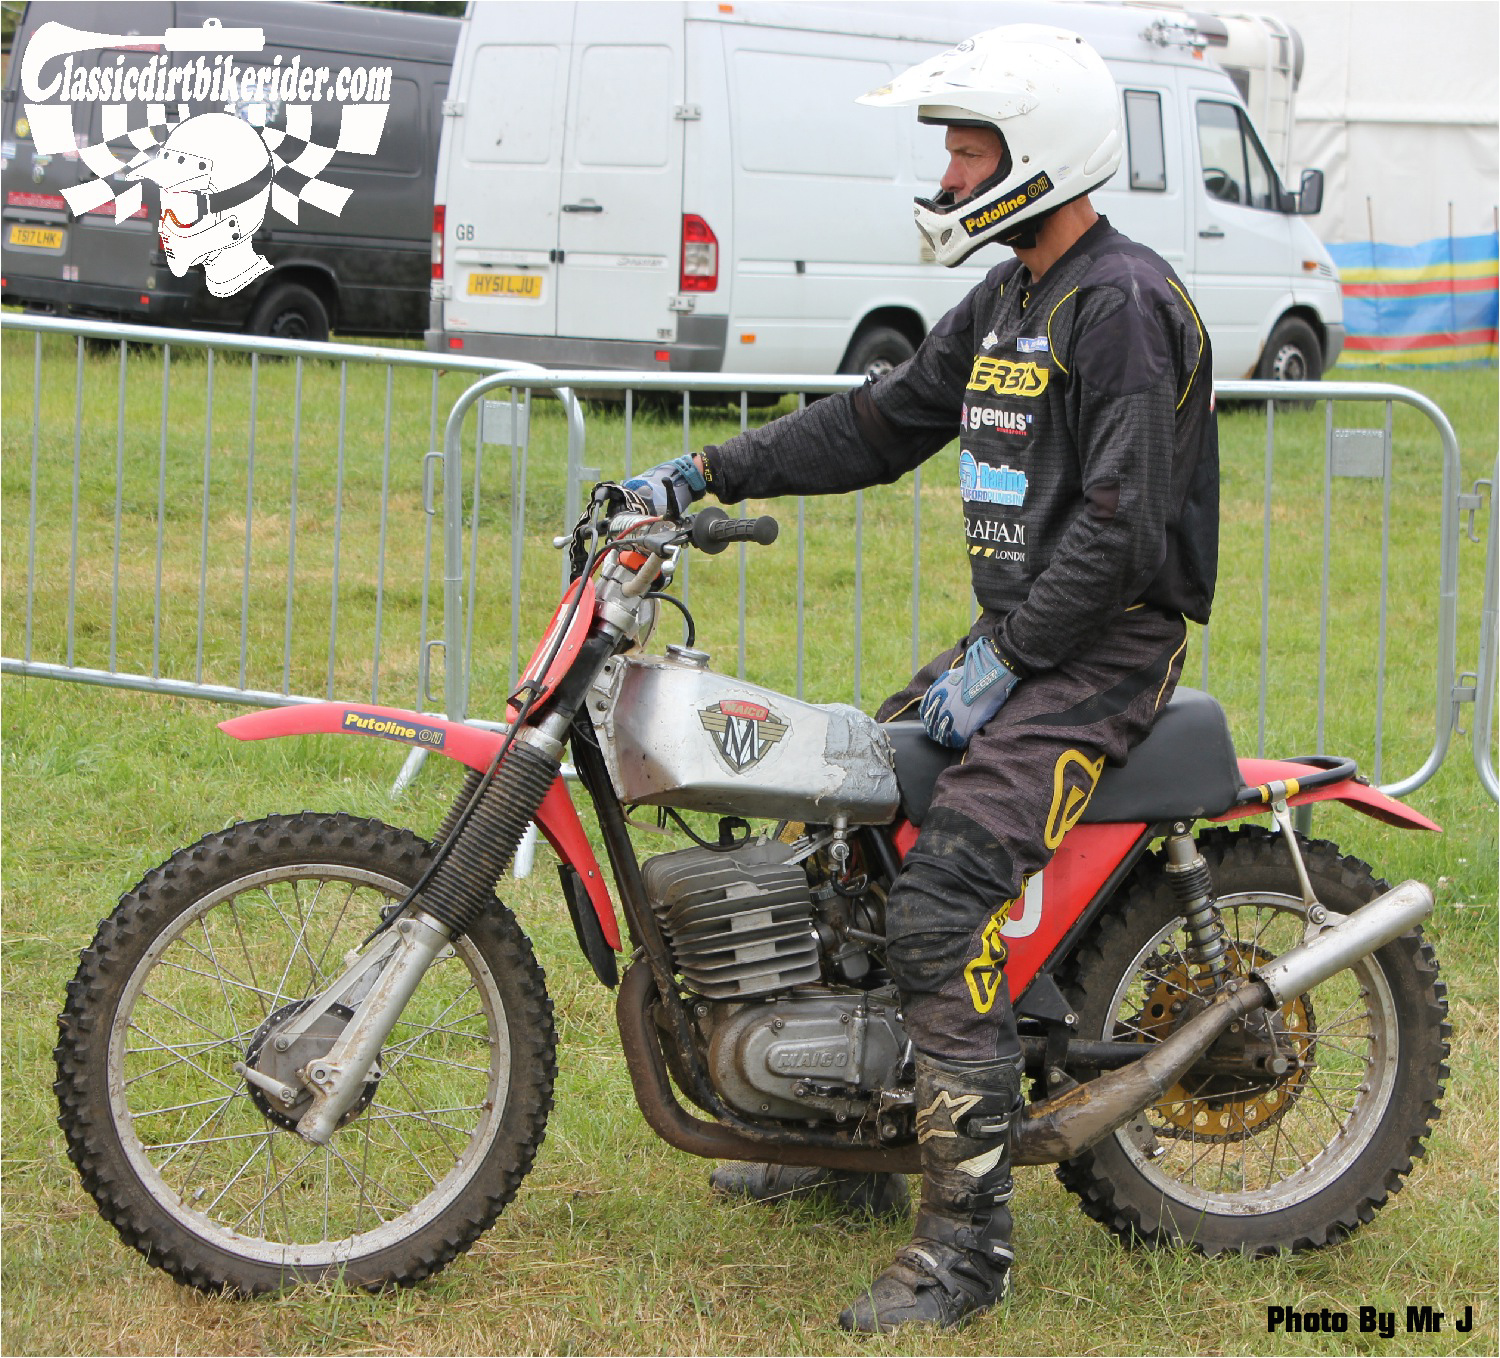 king of the castle 2015 photos Farleigh Castle twinshock motocross classicdirtbikerider.com 2